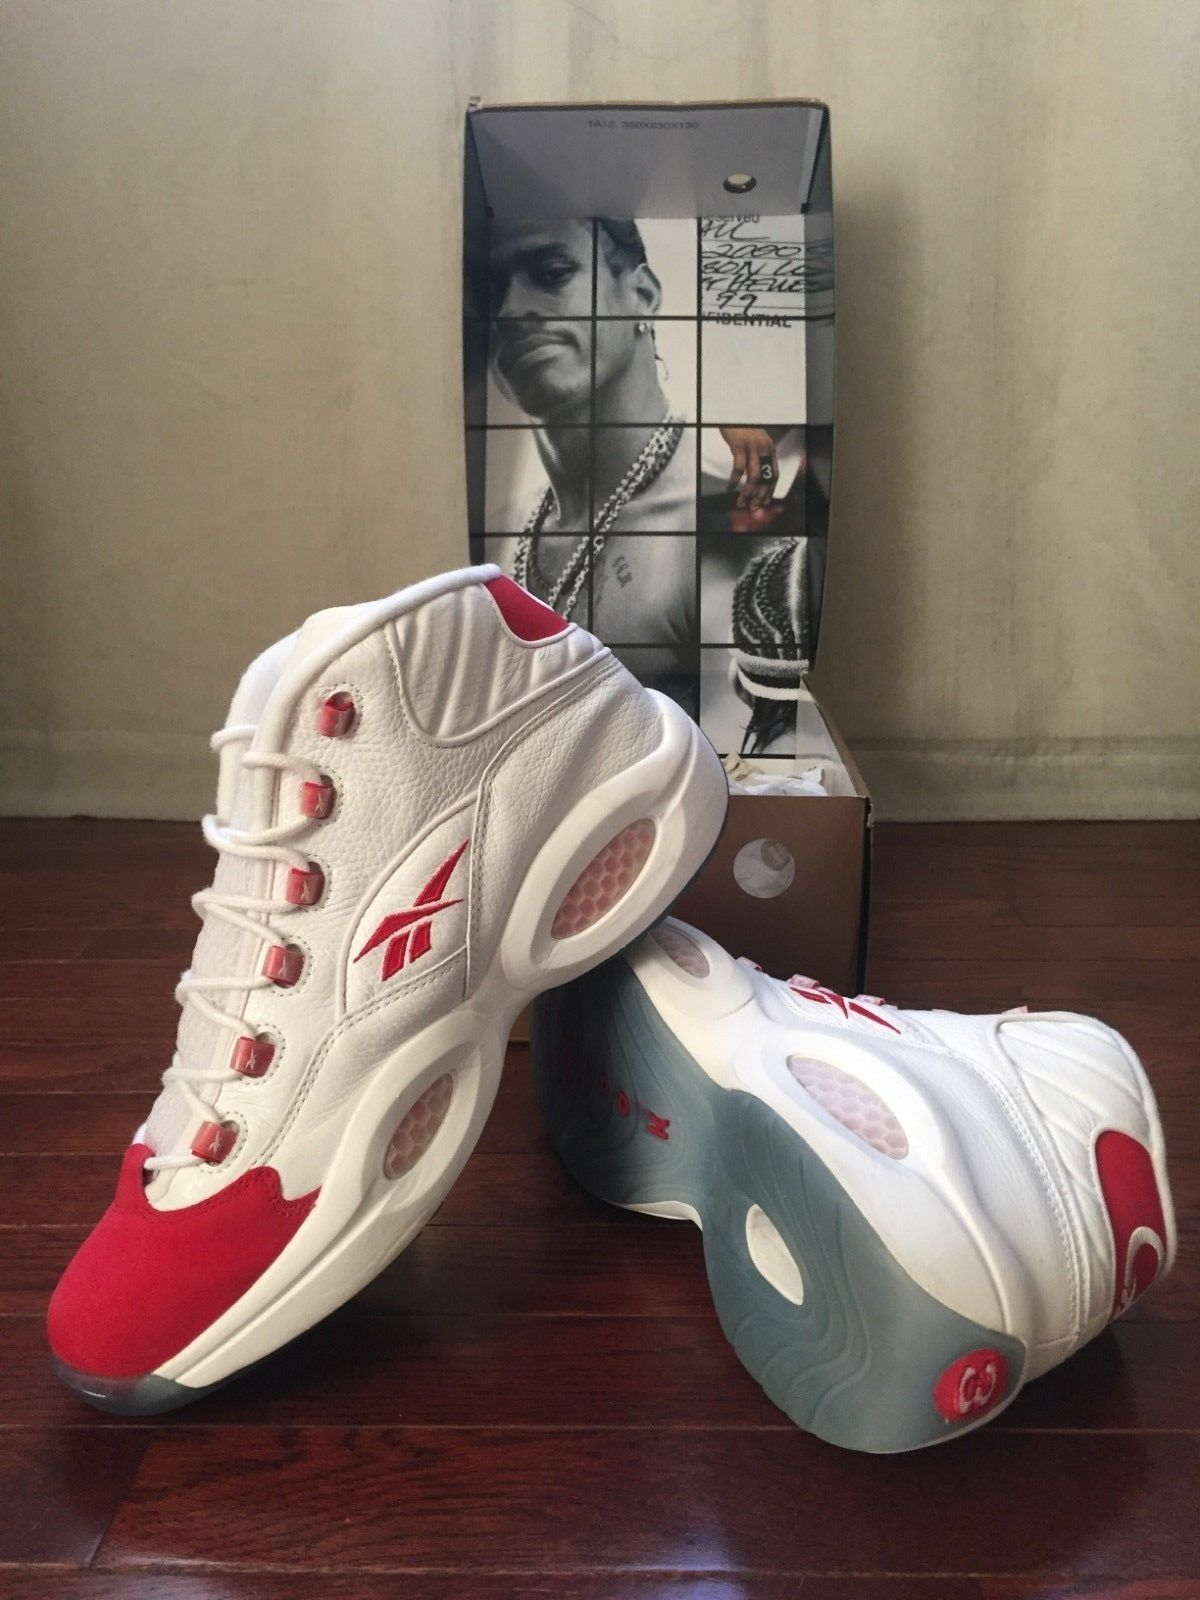 ce7f7361d17 Reebok Iverson Question Mid 10th Anniversary Edition Red Toe Limited  Release 10 Anniversary